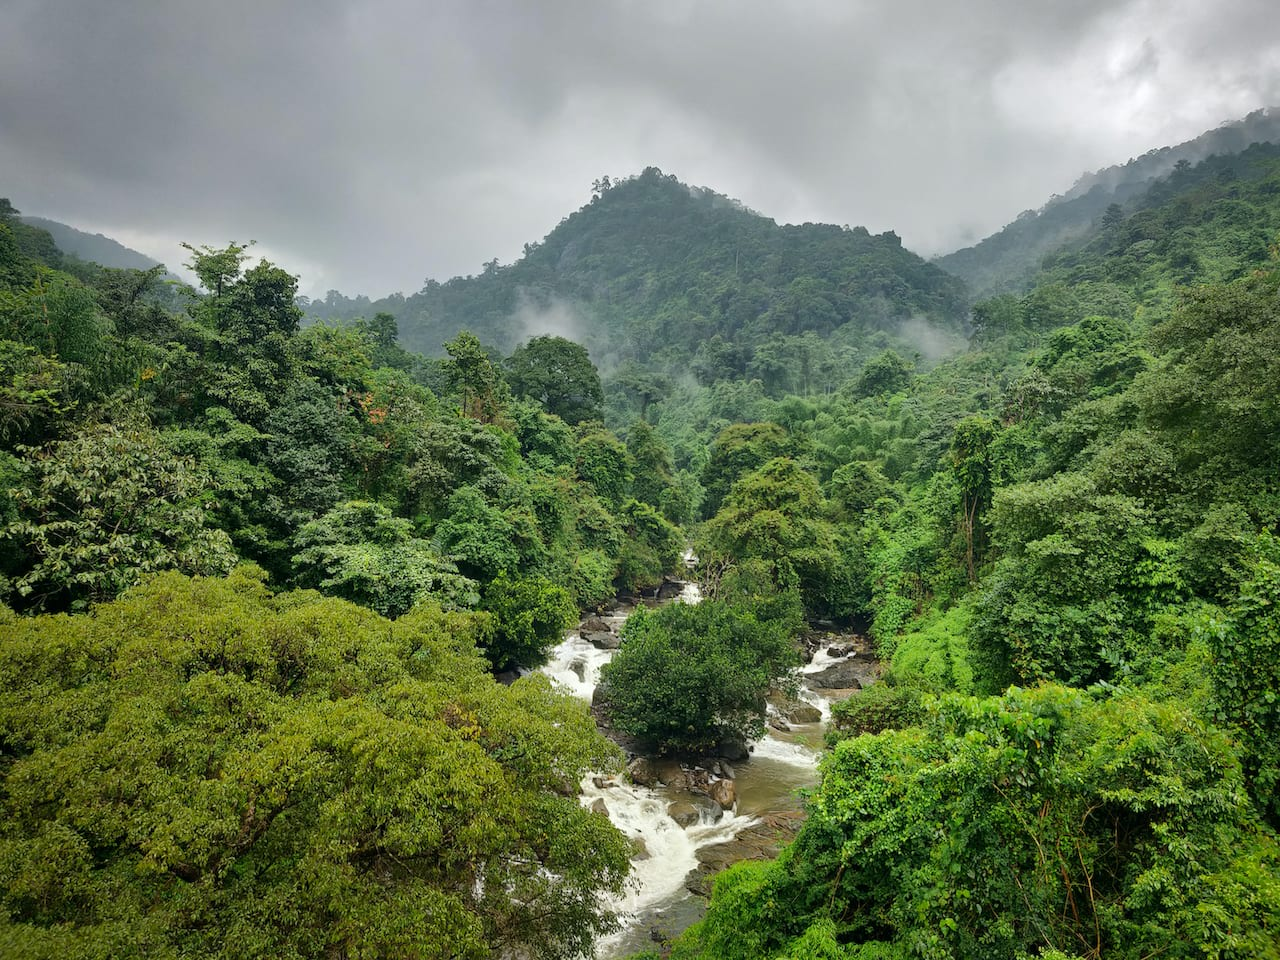 The pristine forests and perennial streams of Wayanad bring Badusha joy and provide him with the fuel to stop the onslaught of infrastructure projects that threaten this fragile ecosystem.    Photo: PankM/Shutterstock